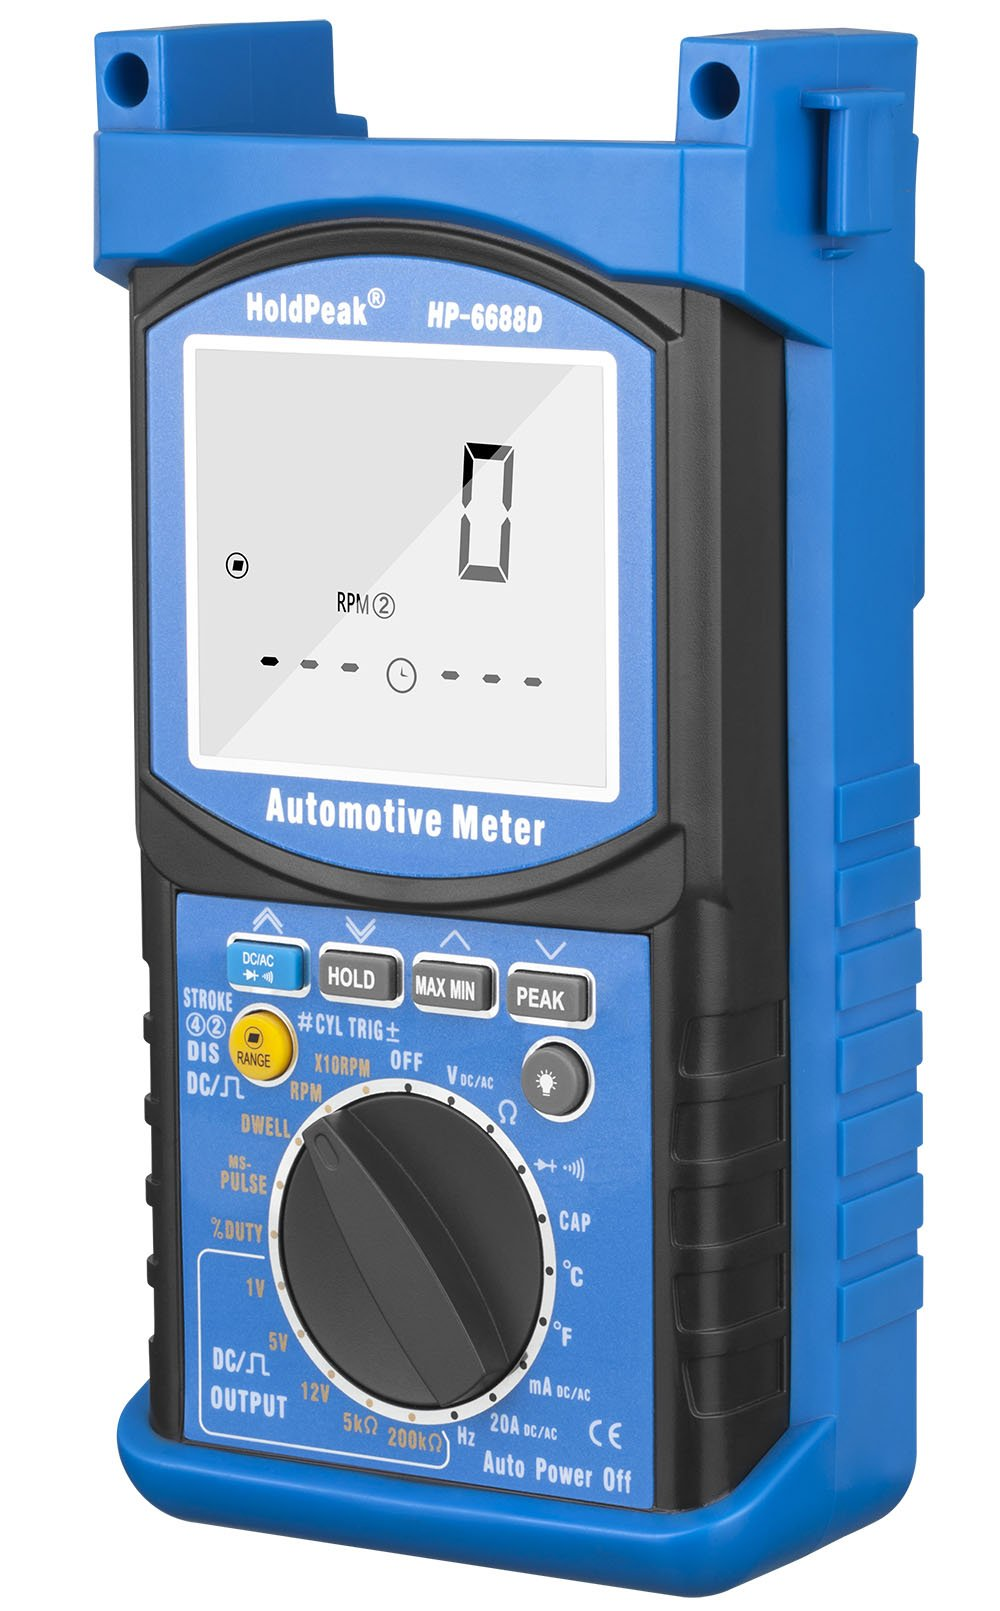 30% OFF HOLDPEAK 6688D Digital Insulation Resistance Tester Measures Voltage And Insulation Resistance With Data Hold And Backlight For Electronics, Chemicals Etc.